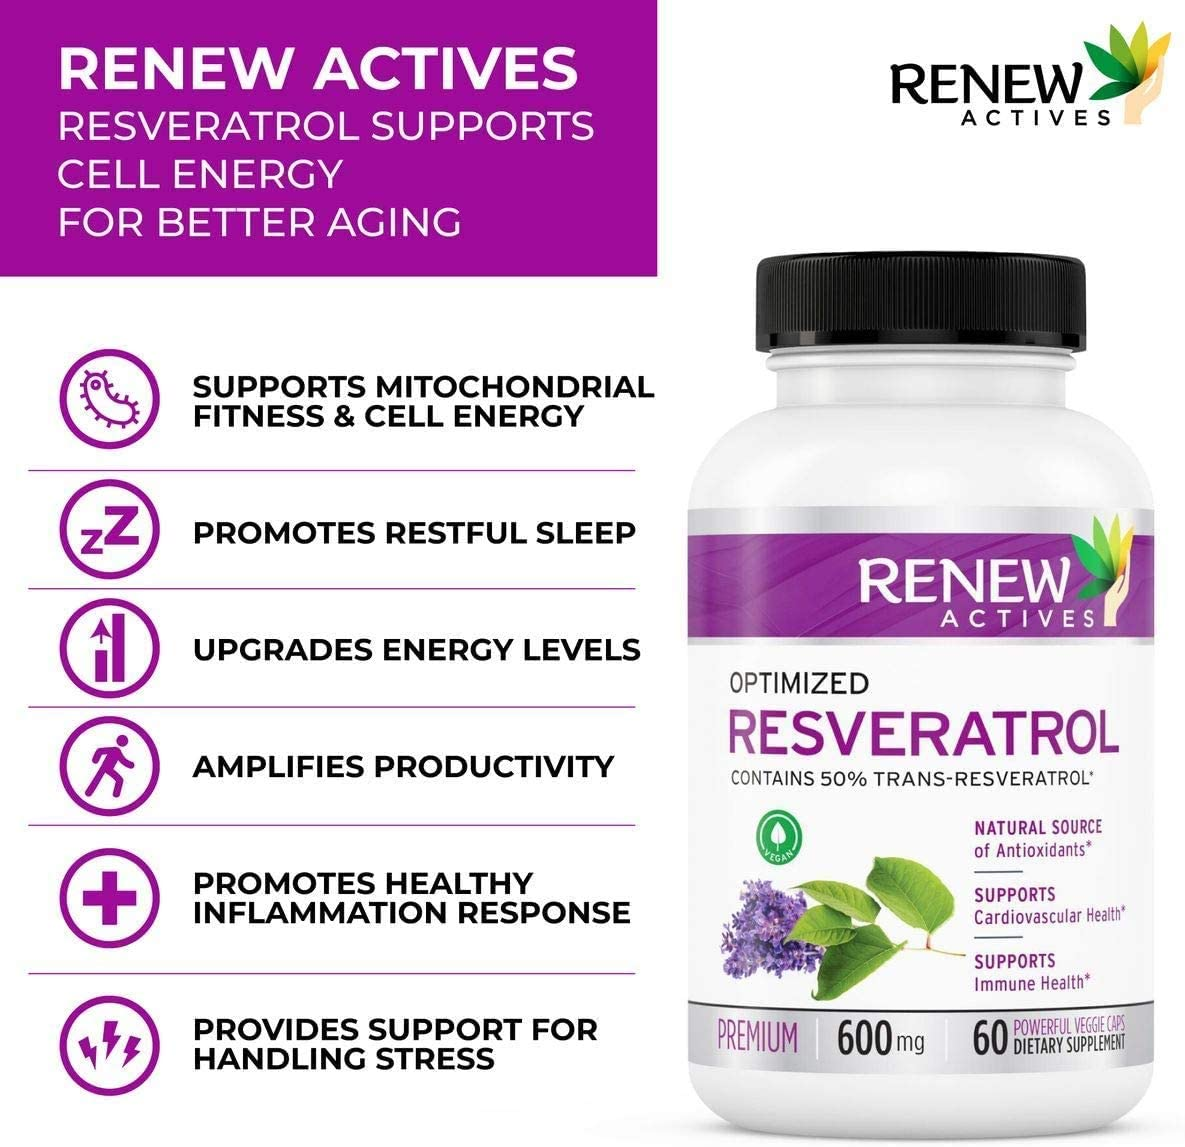 Renew Actives Optimized Resveratrol Supplement 600mg